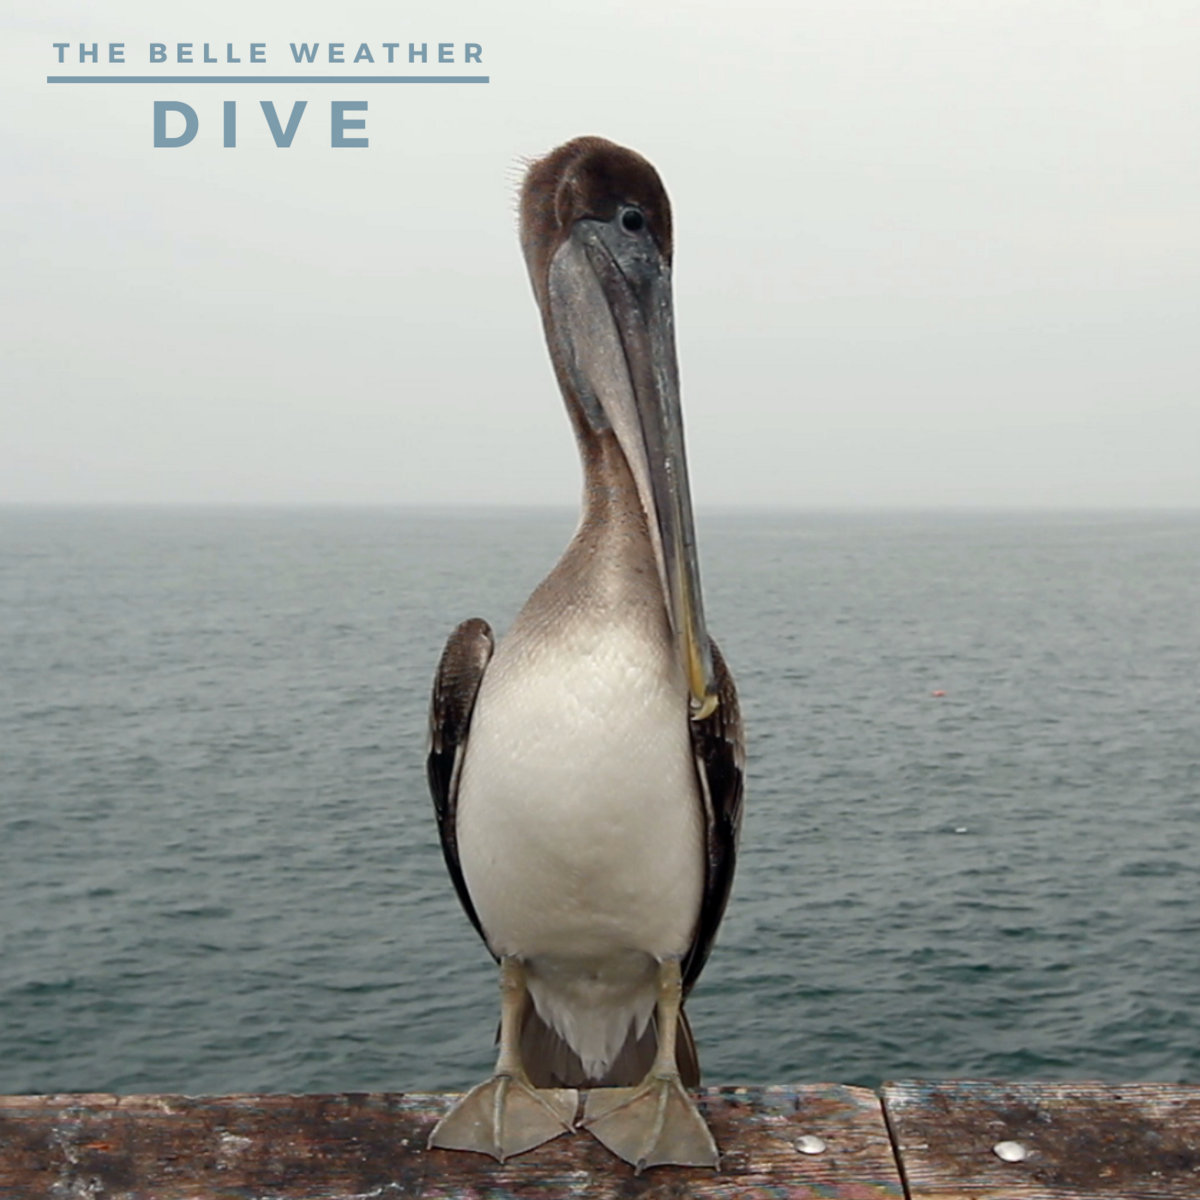 Dive (2020) by The Belle Weather